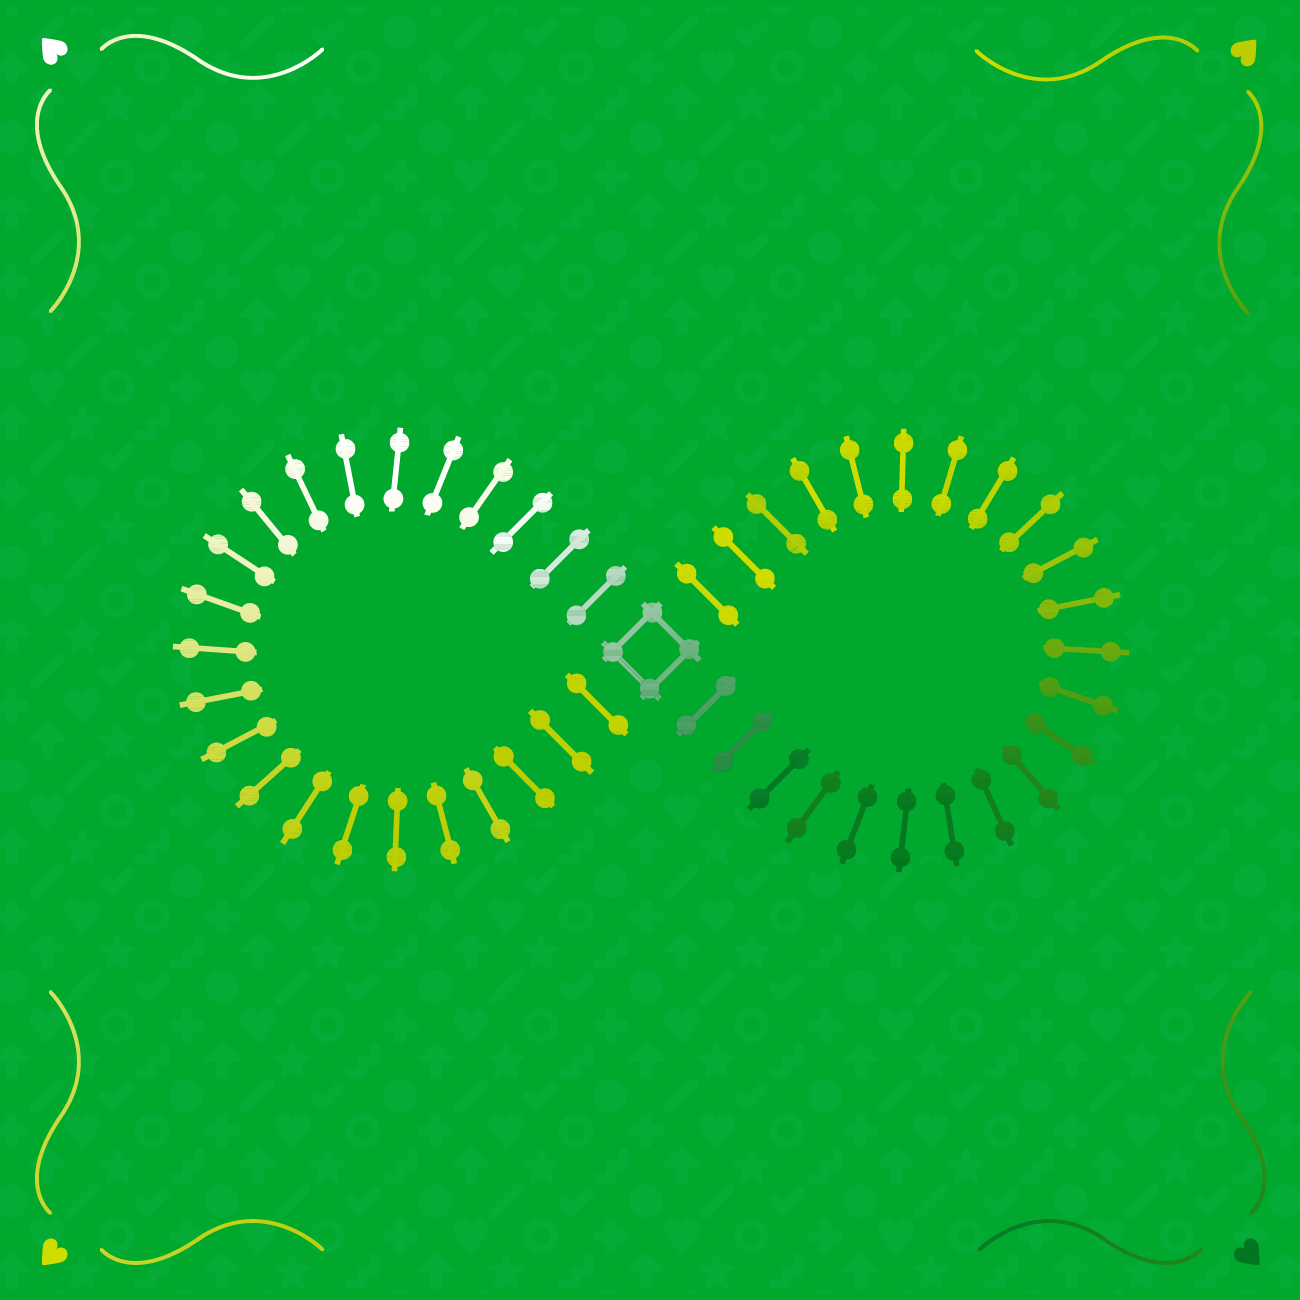 The infinity symbol reimagined as a set of train tracks, representing the persistence of bad habits.